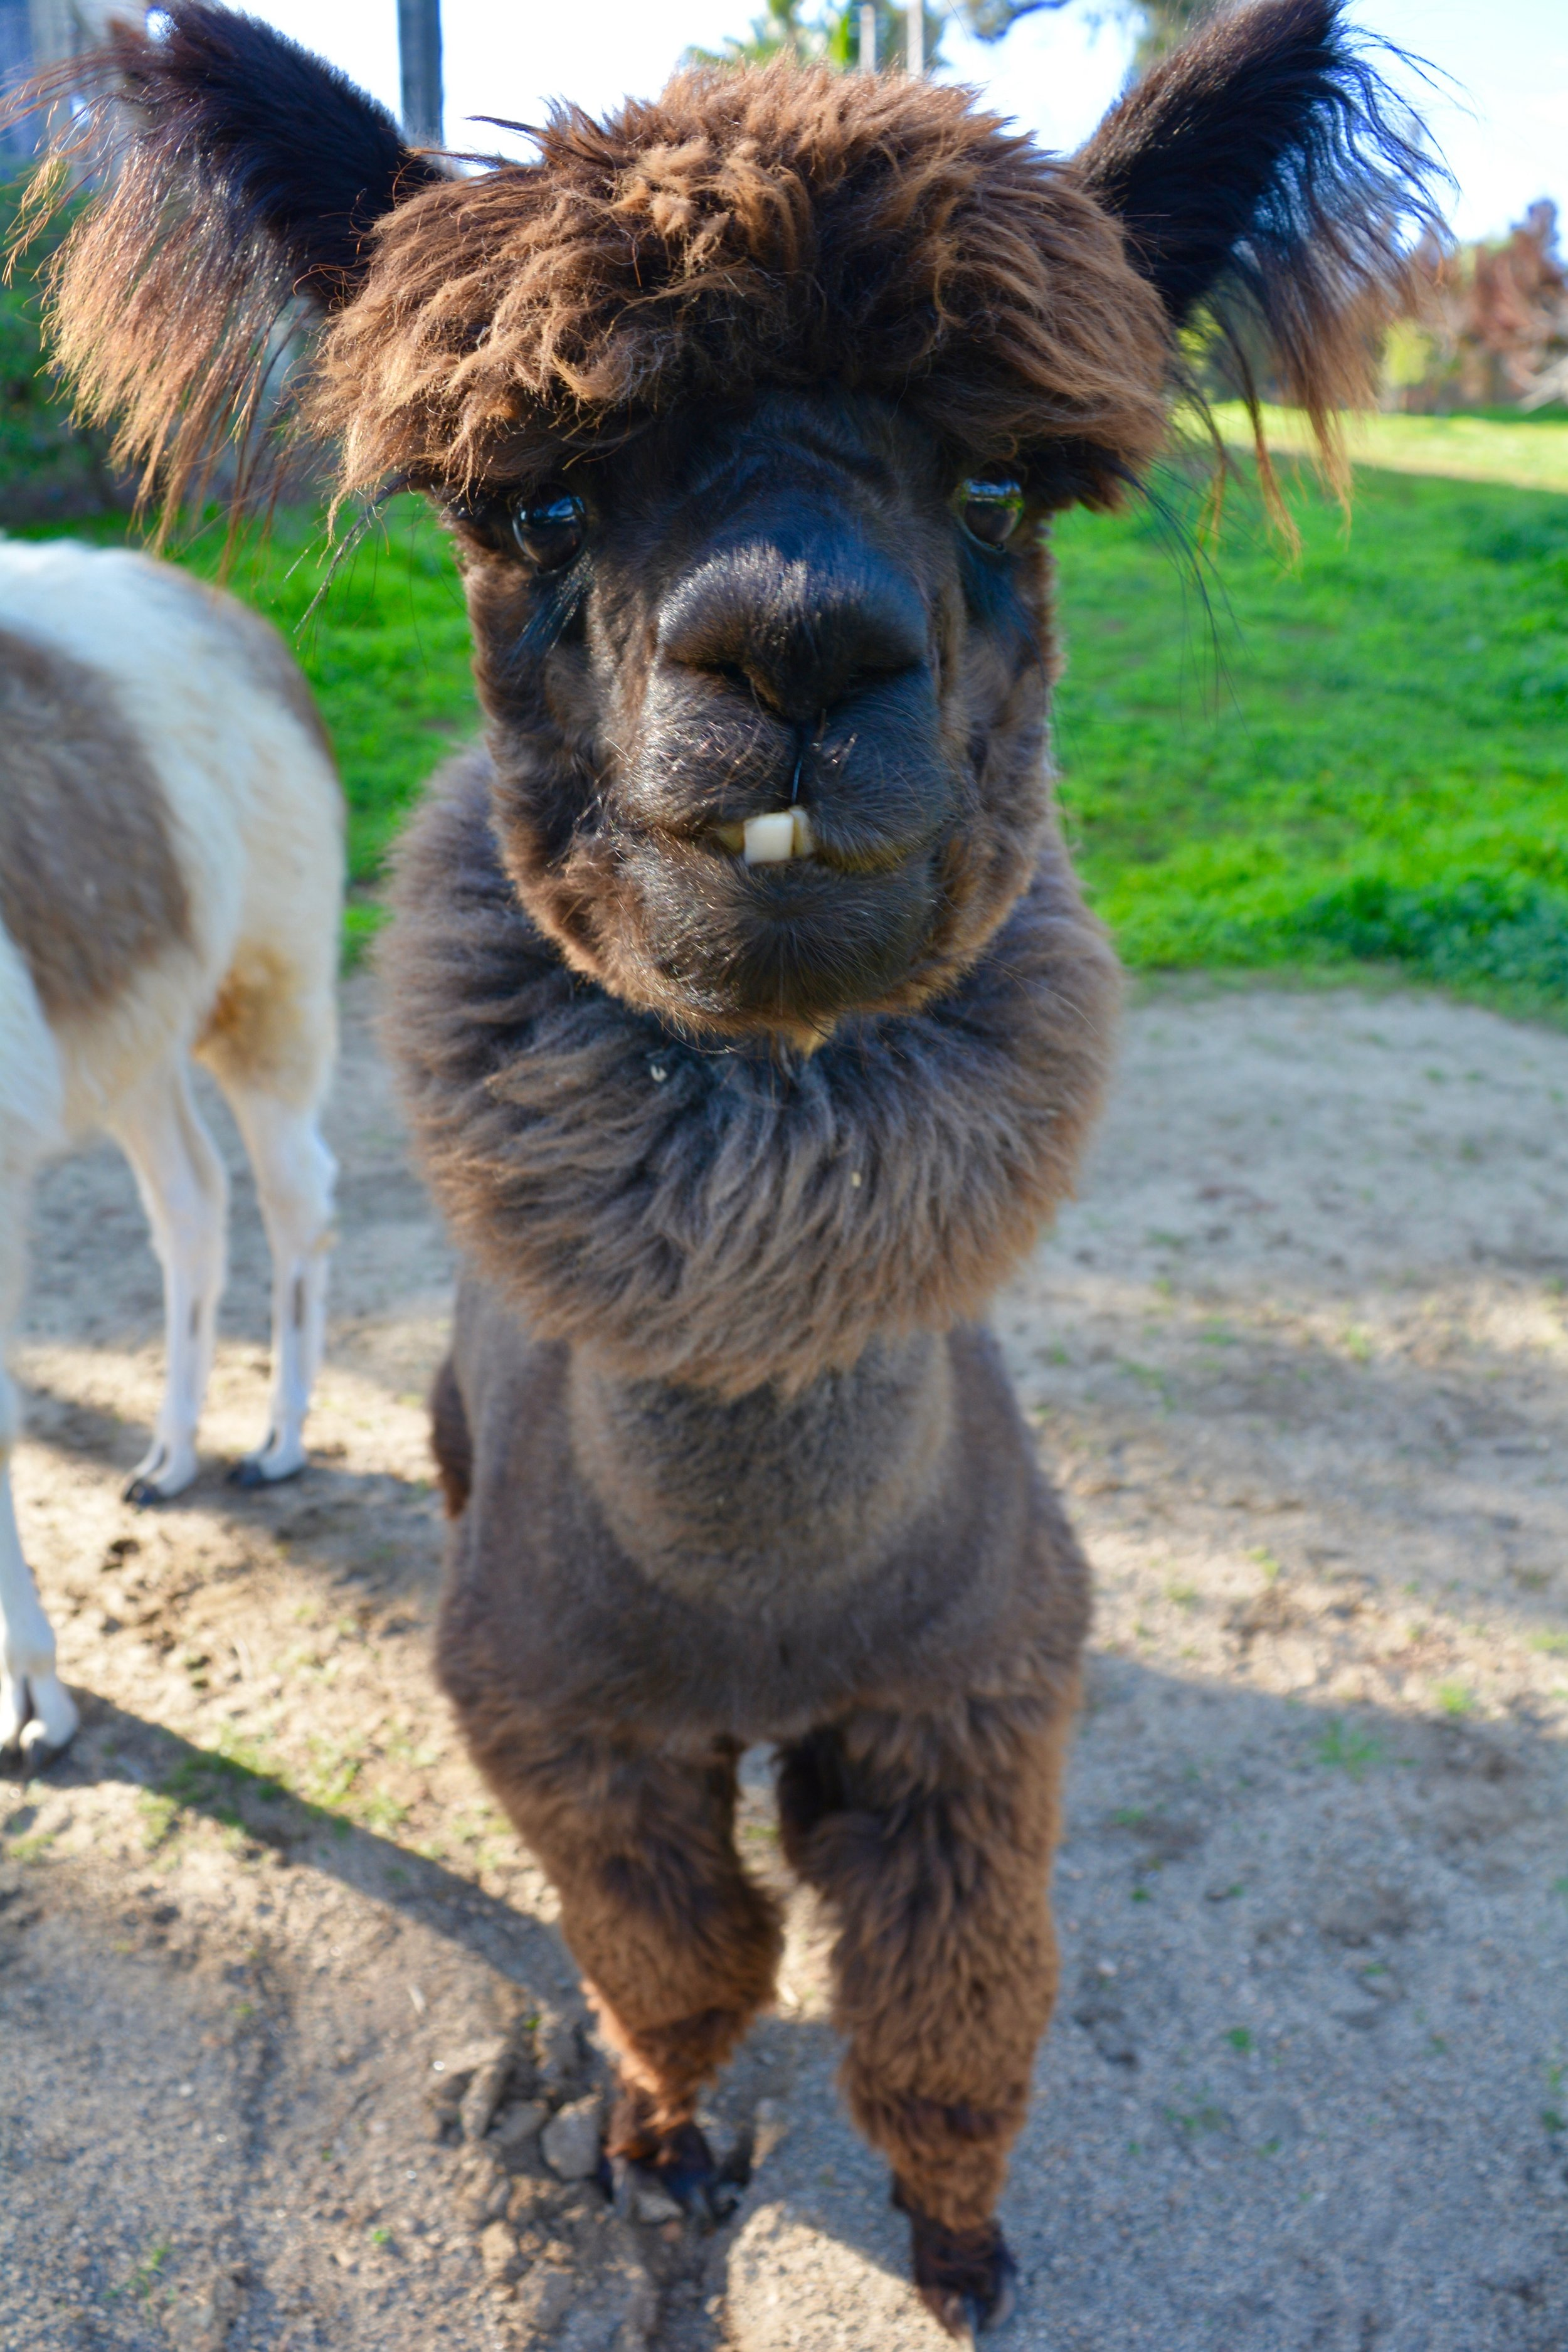 Roosevelt the alpaca gives me the stare-down